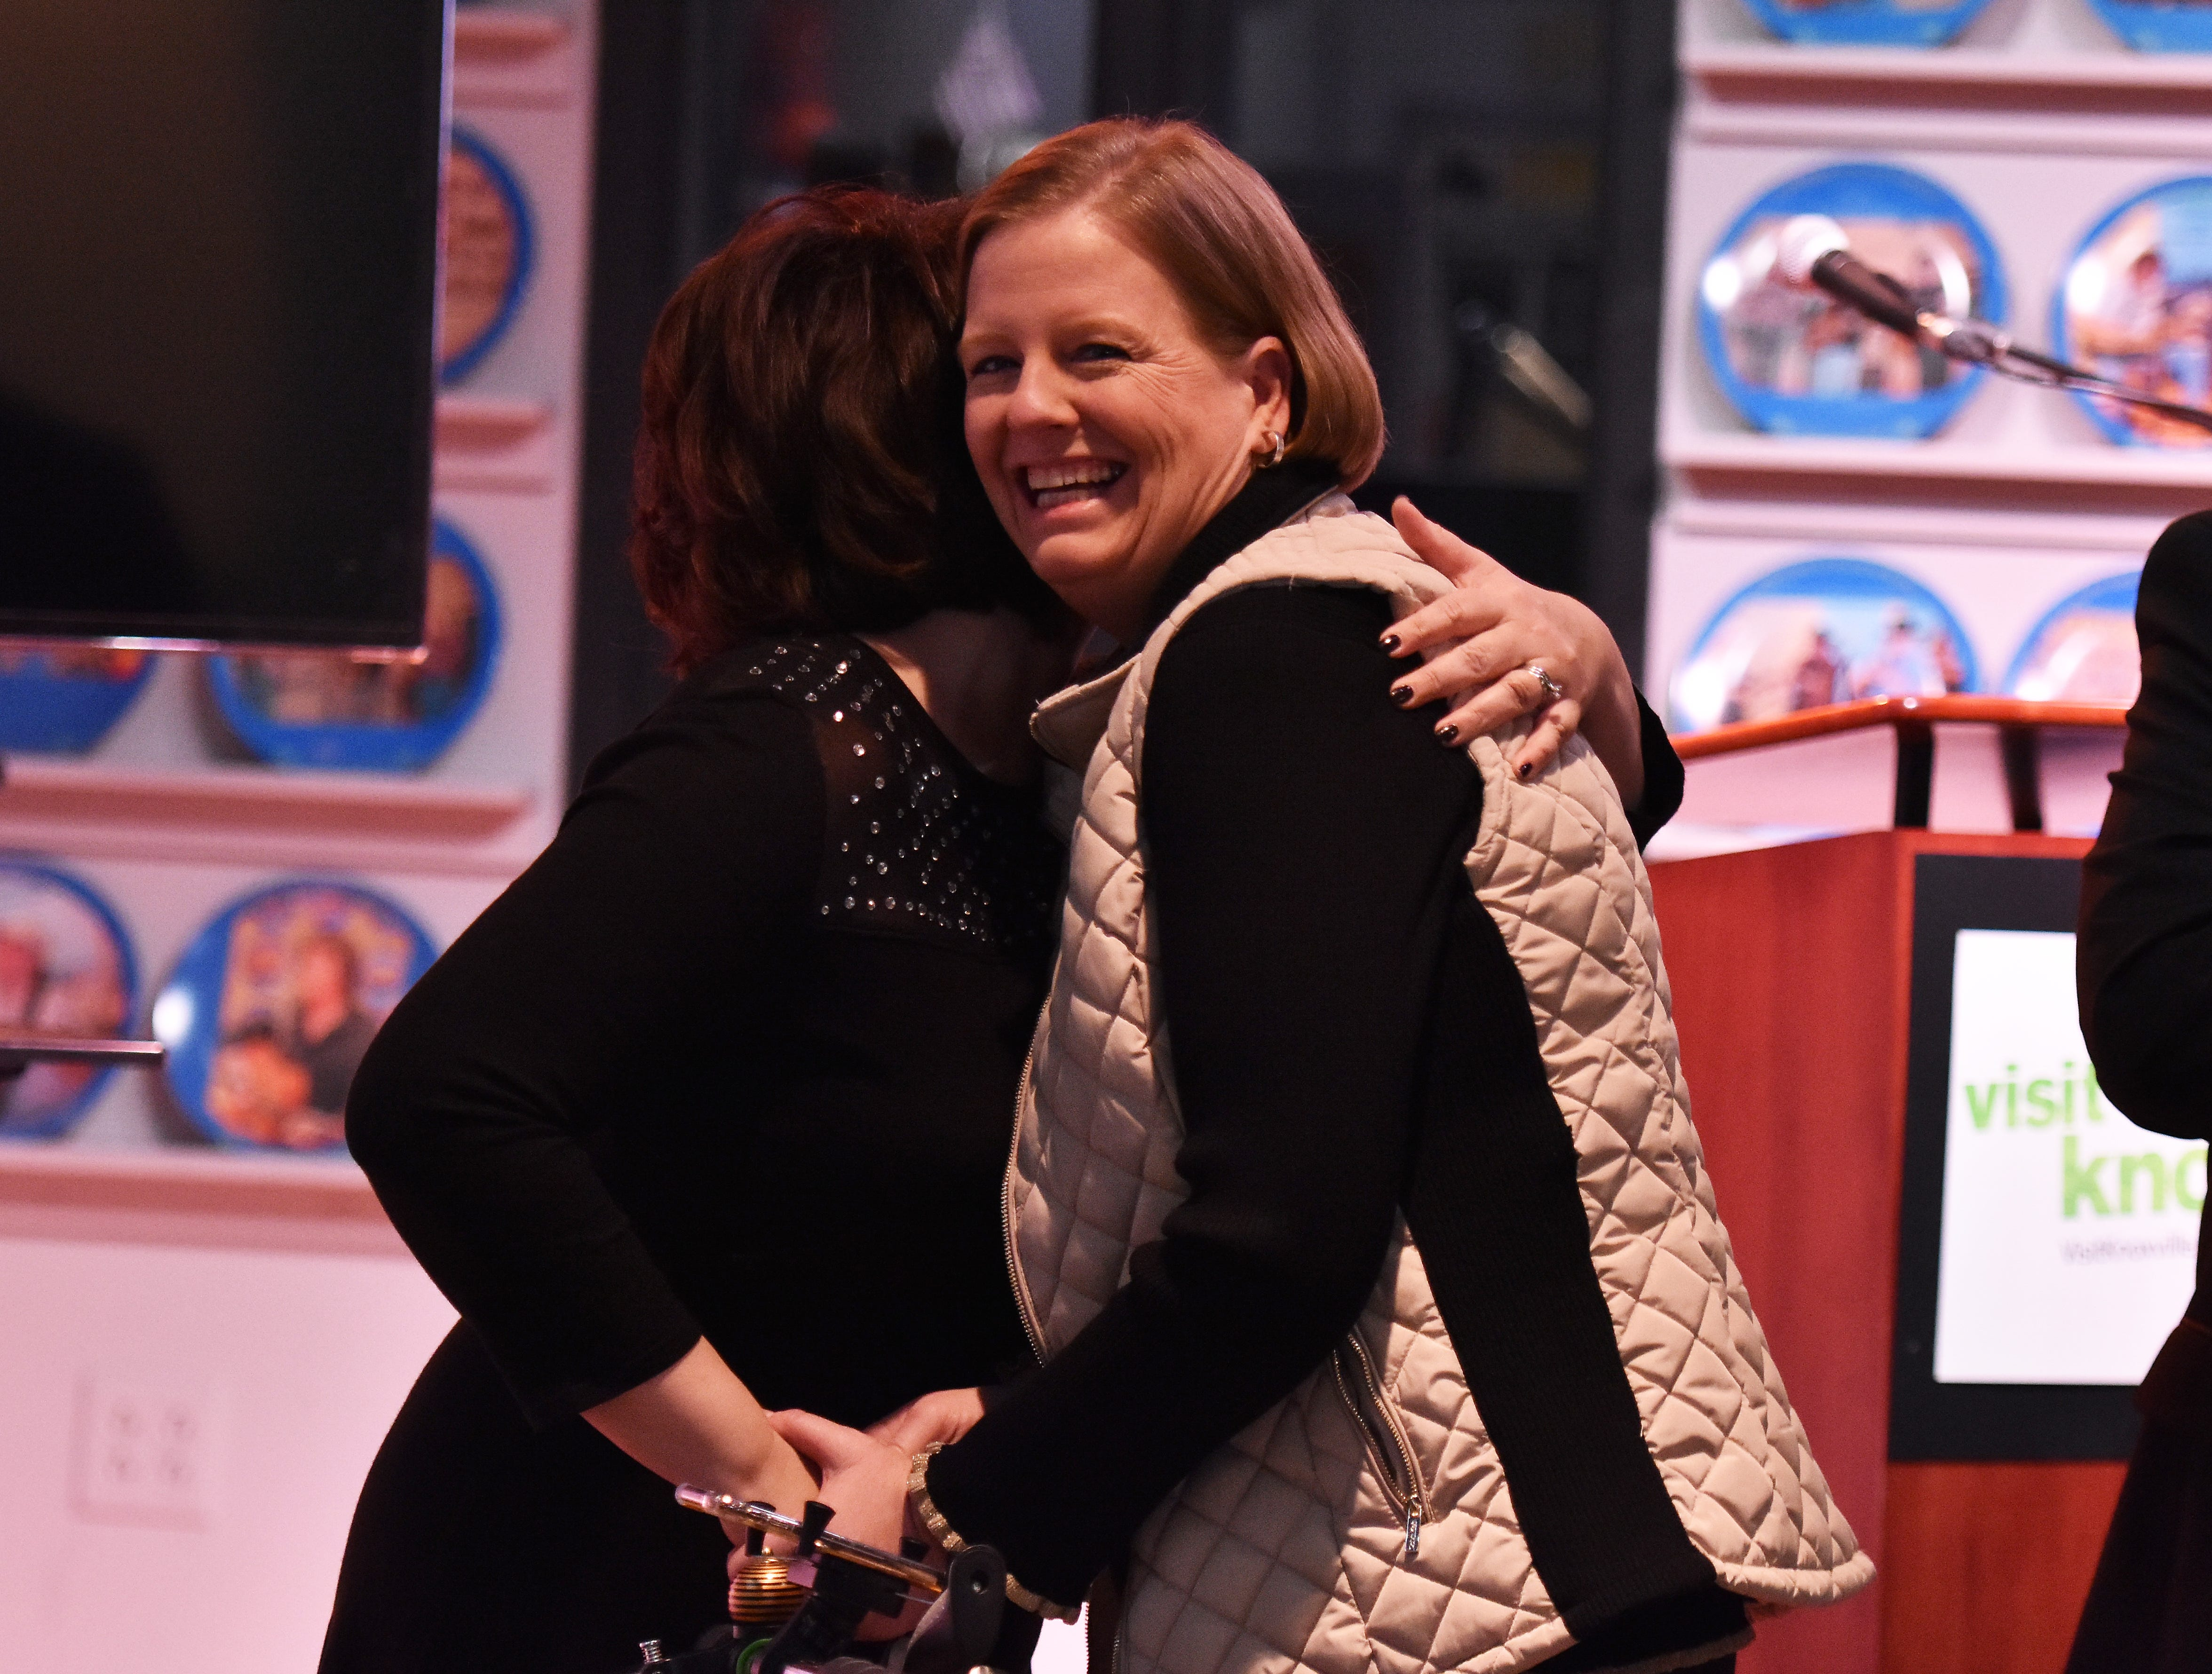 Kim Bumpas, right, president of Visit Knoxville, receives a hug from Lanna Smith prior to the press conference.